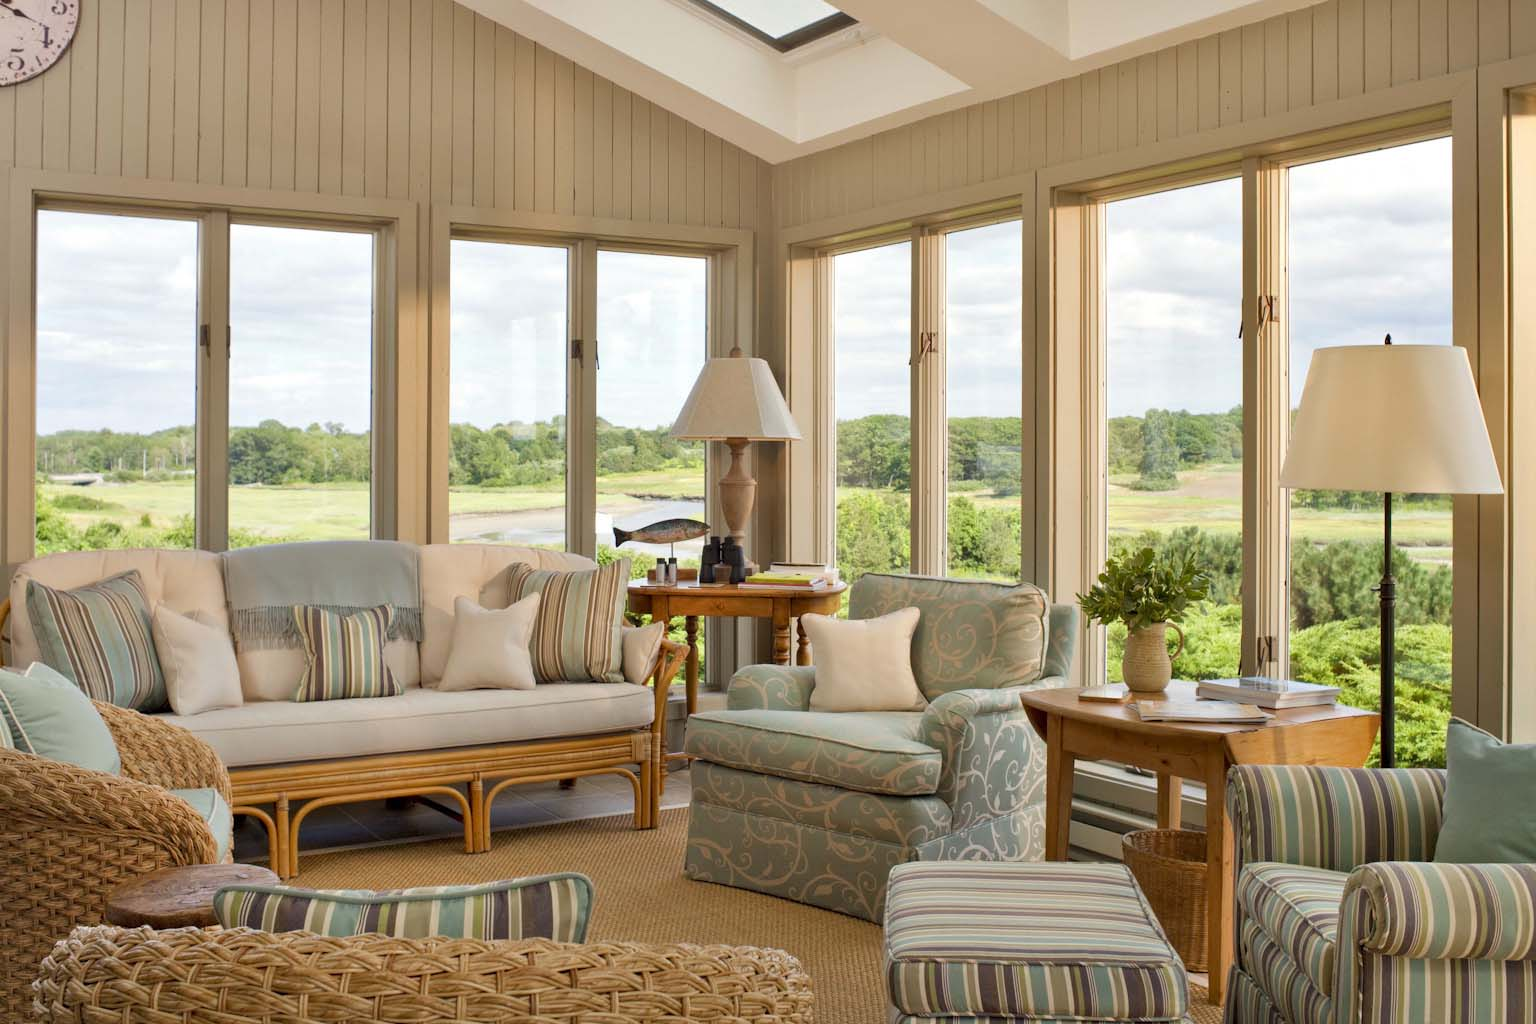 Image of: sunroom designs pictures